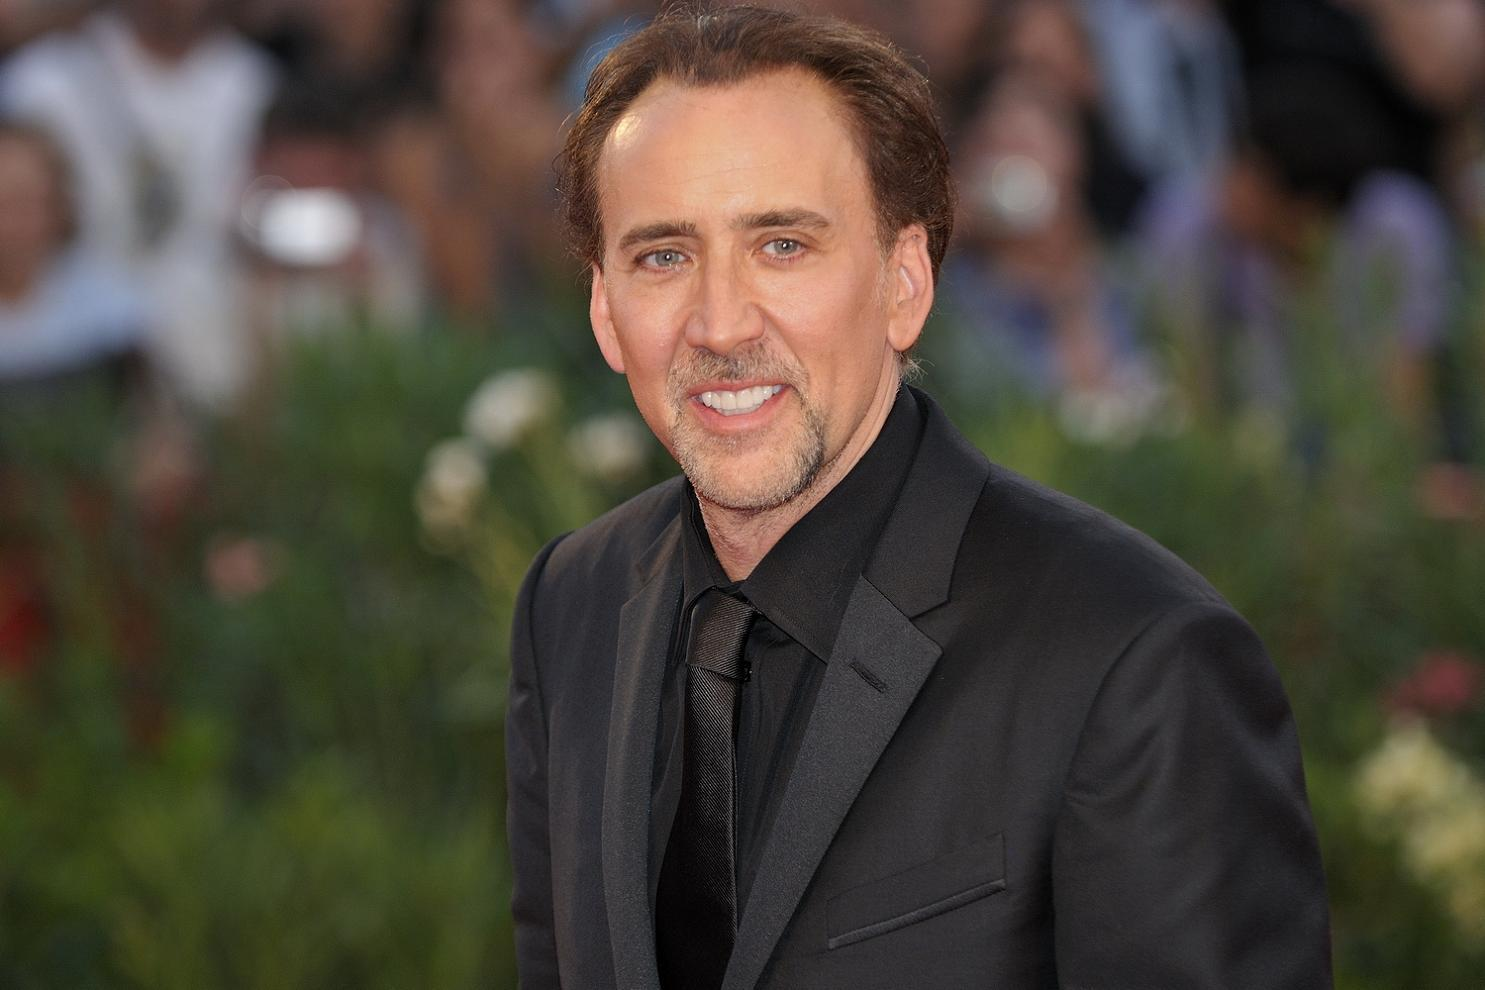 Nicolas Cage Hd Wallpapers Free Download ~ HD WALLPAPERS FREE DOWNLOAD